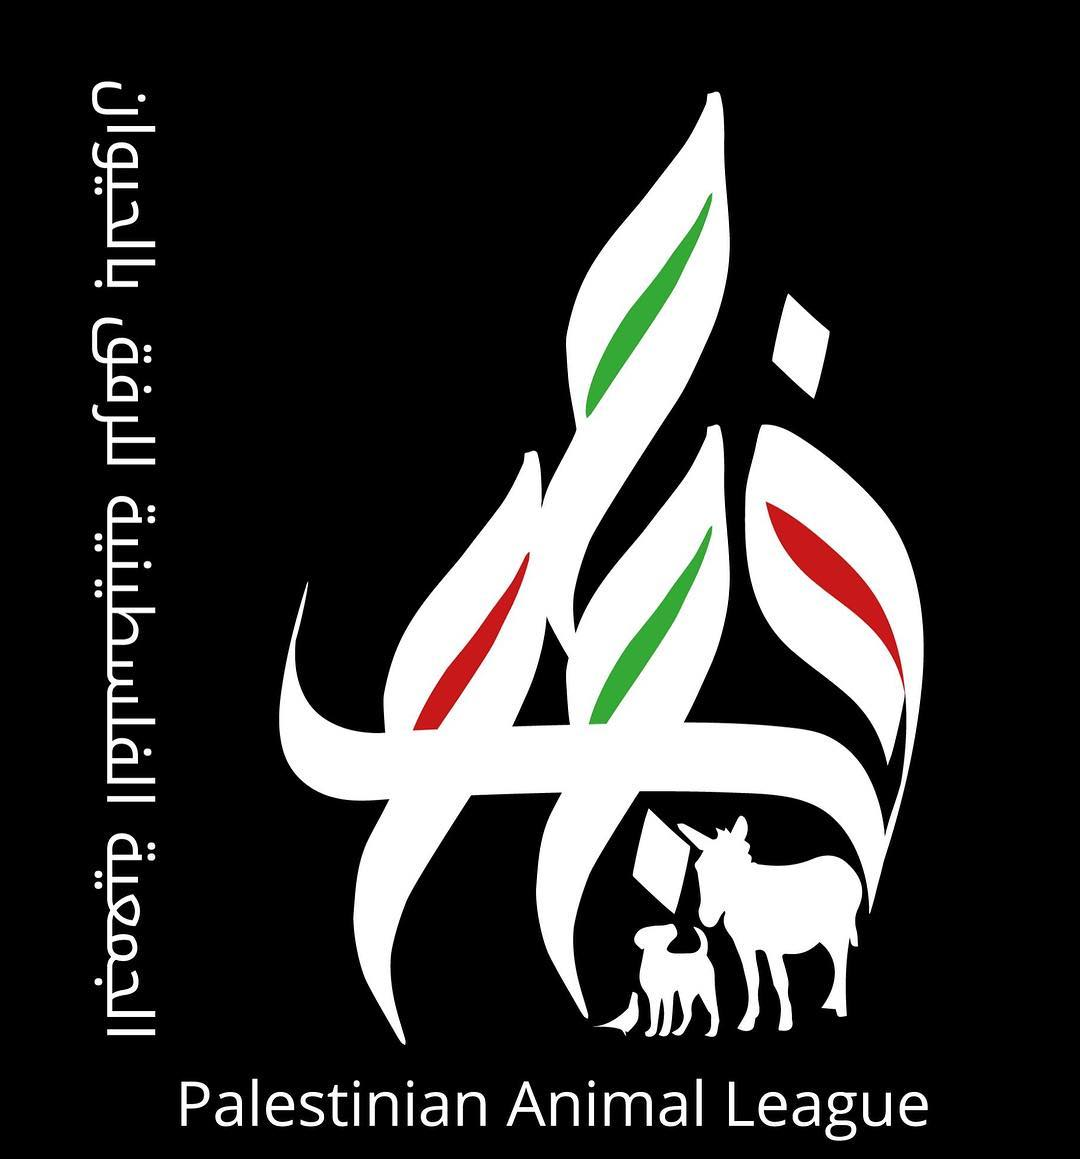 Palestinian Animal Leage - Liberación animal